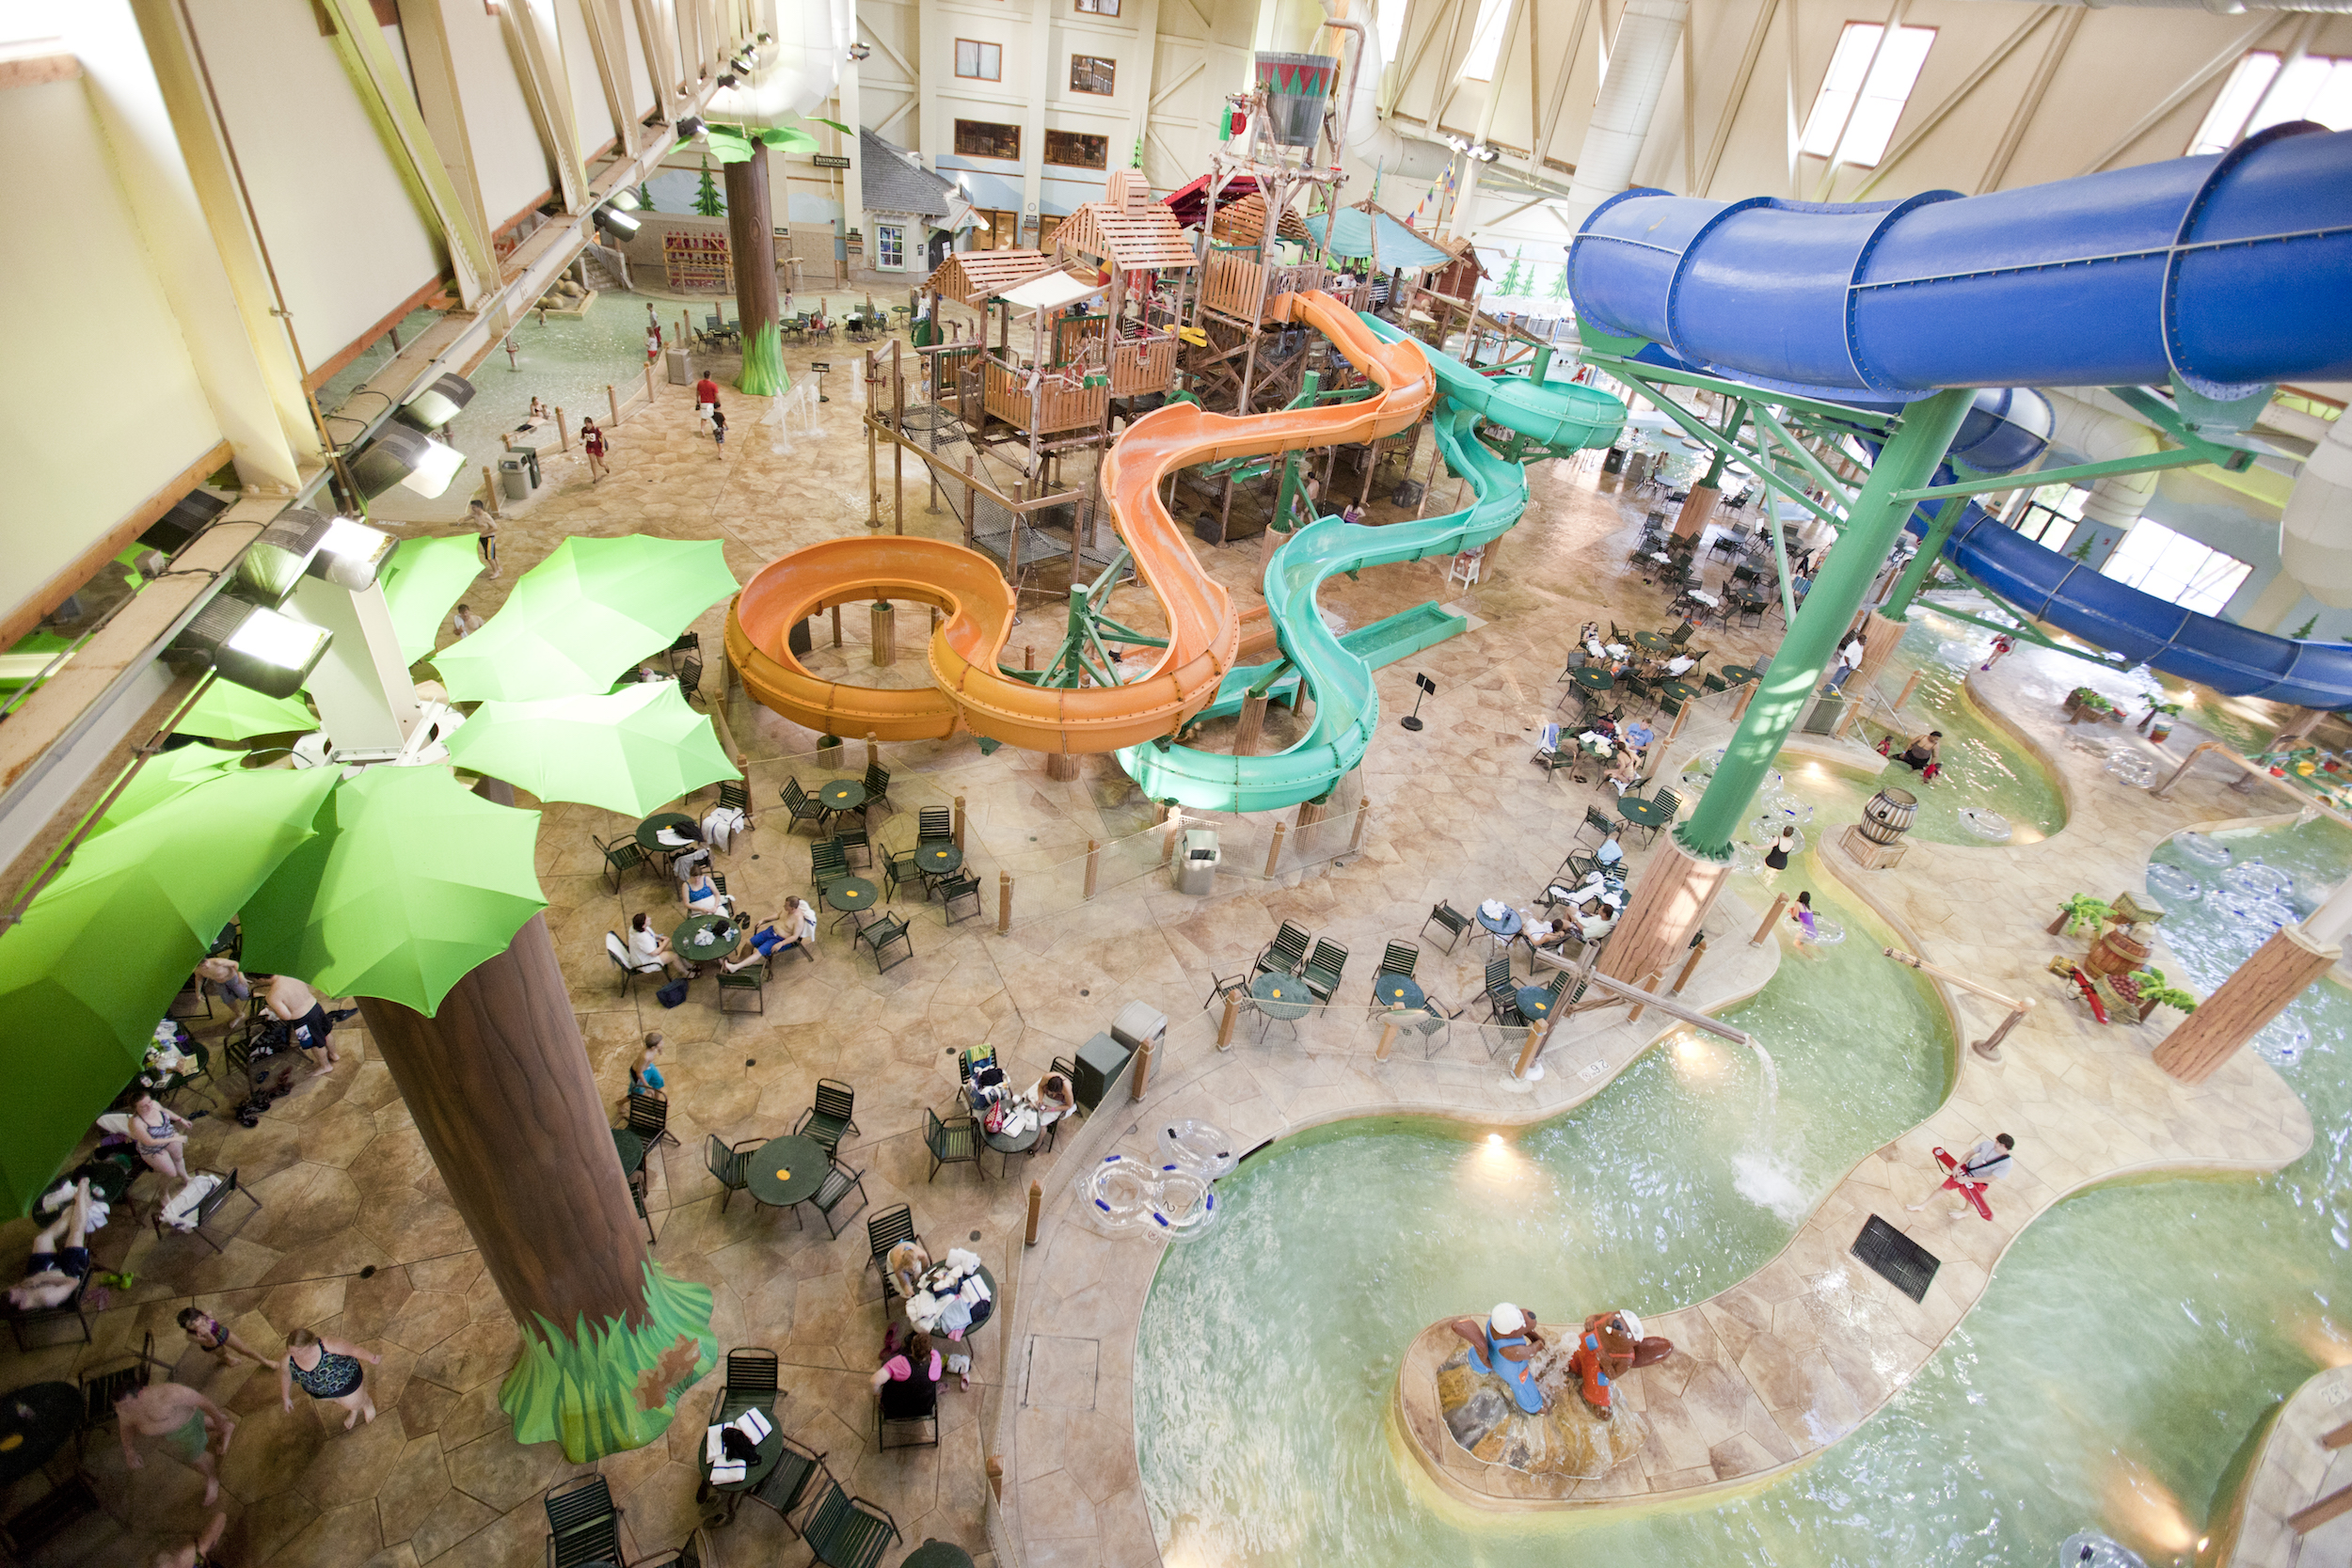 Williamsburg Water Park